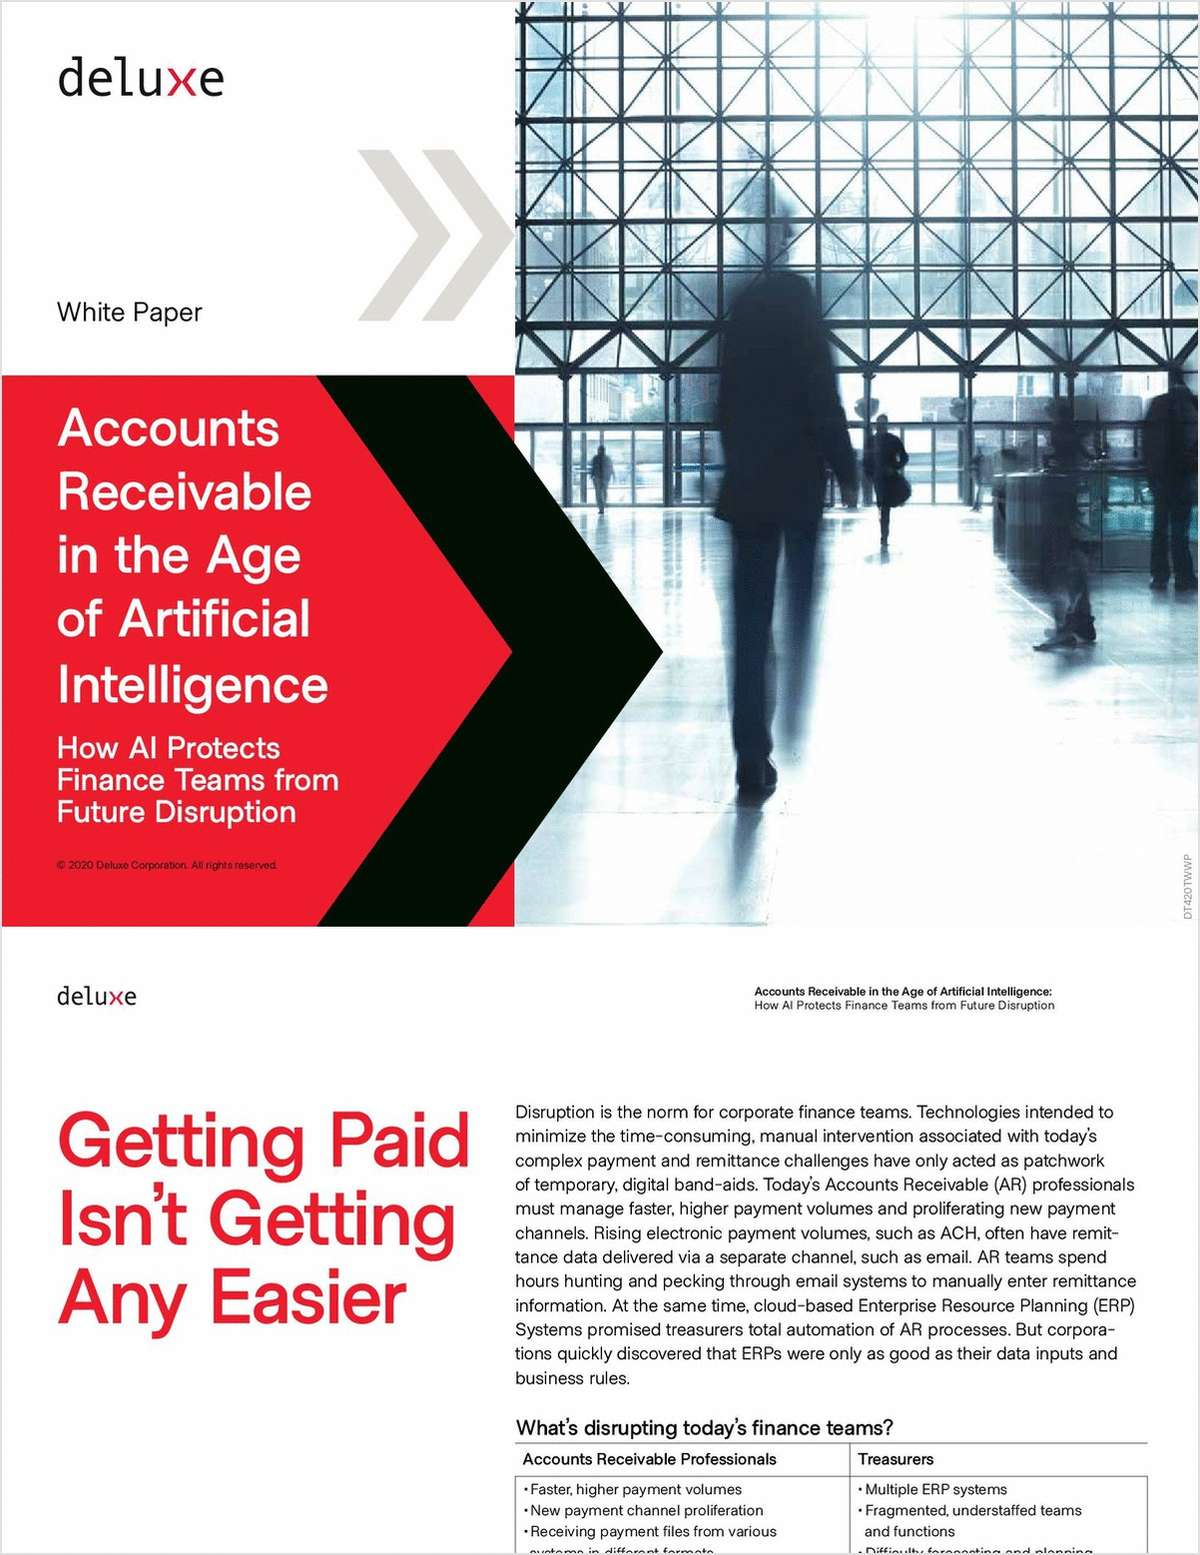 Accounts Receivable in the Age of Artificial Intelligence